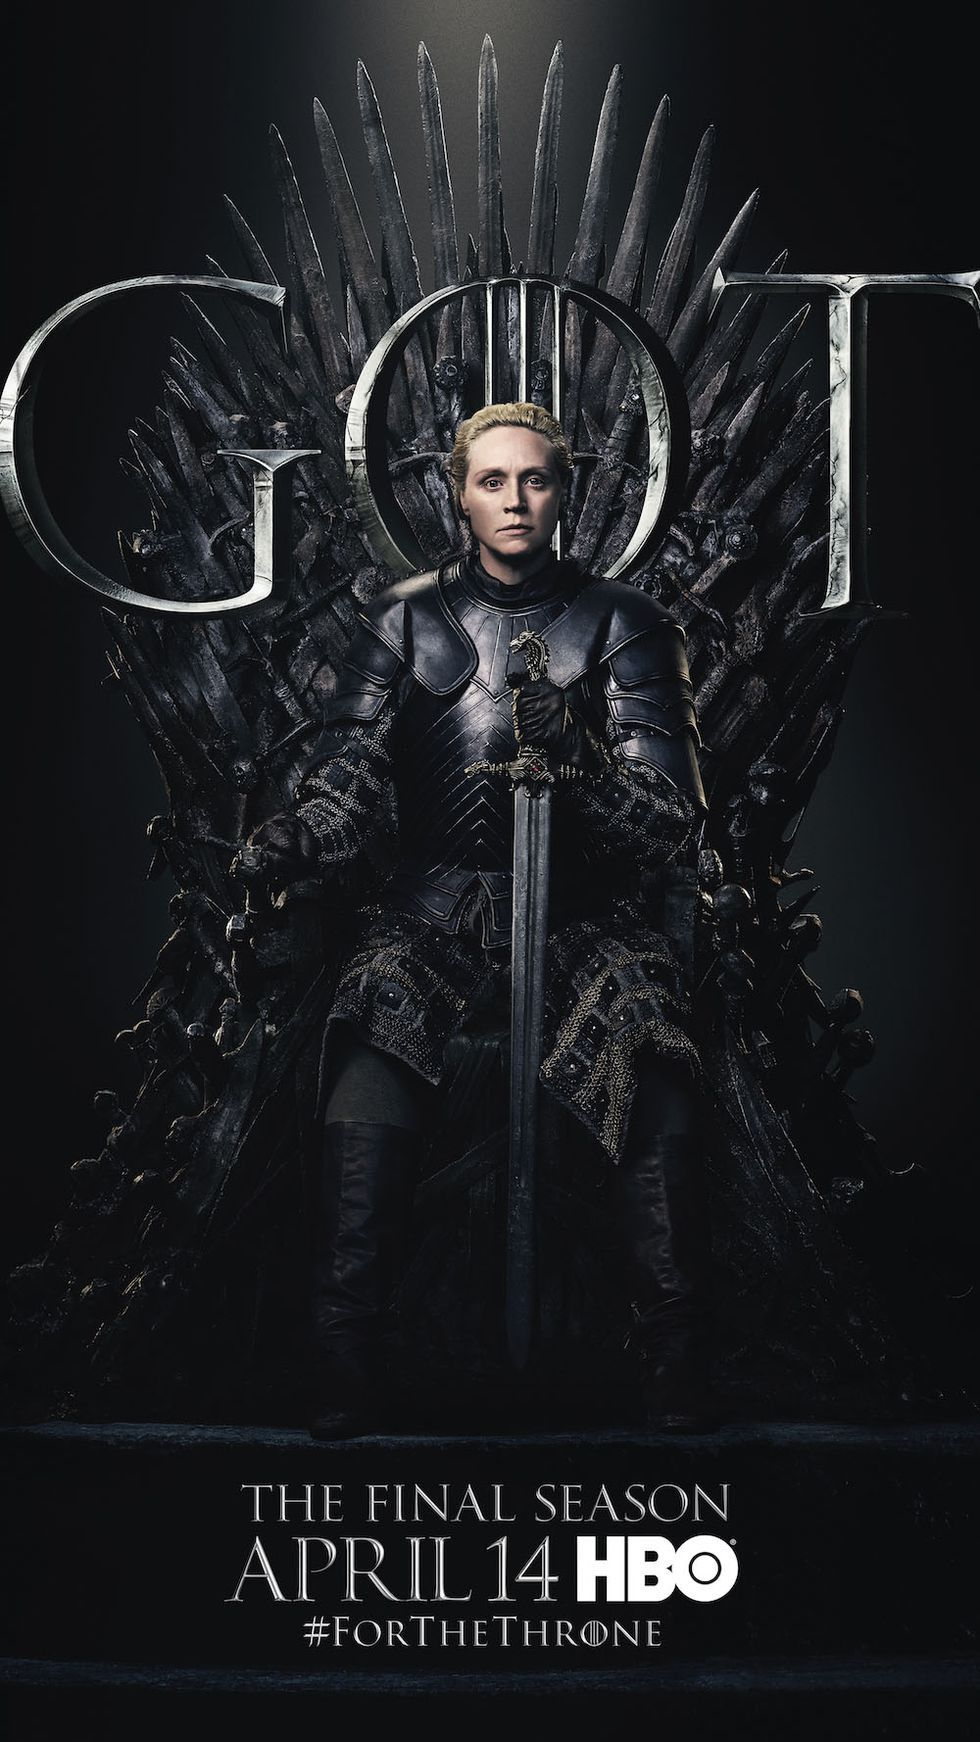 Game of Thrones Season 8 Posters